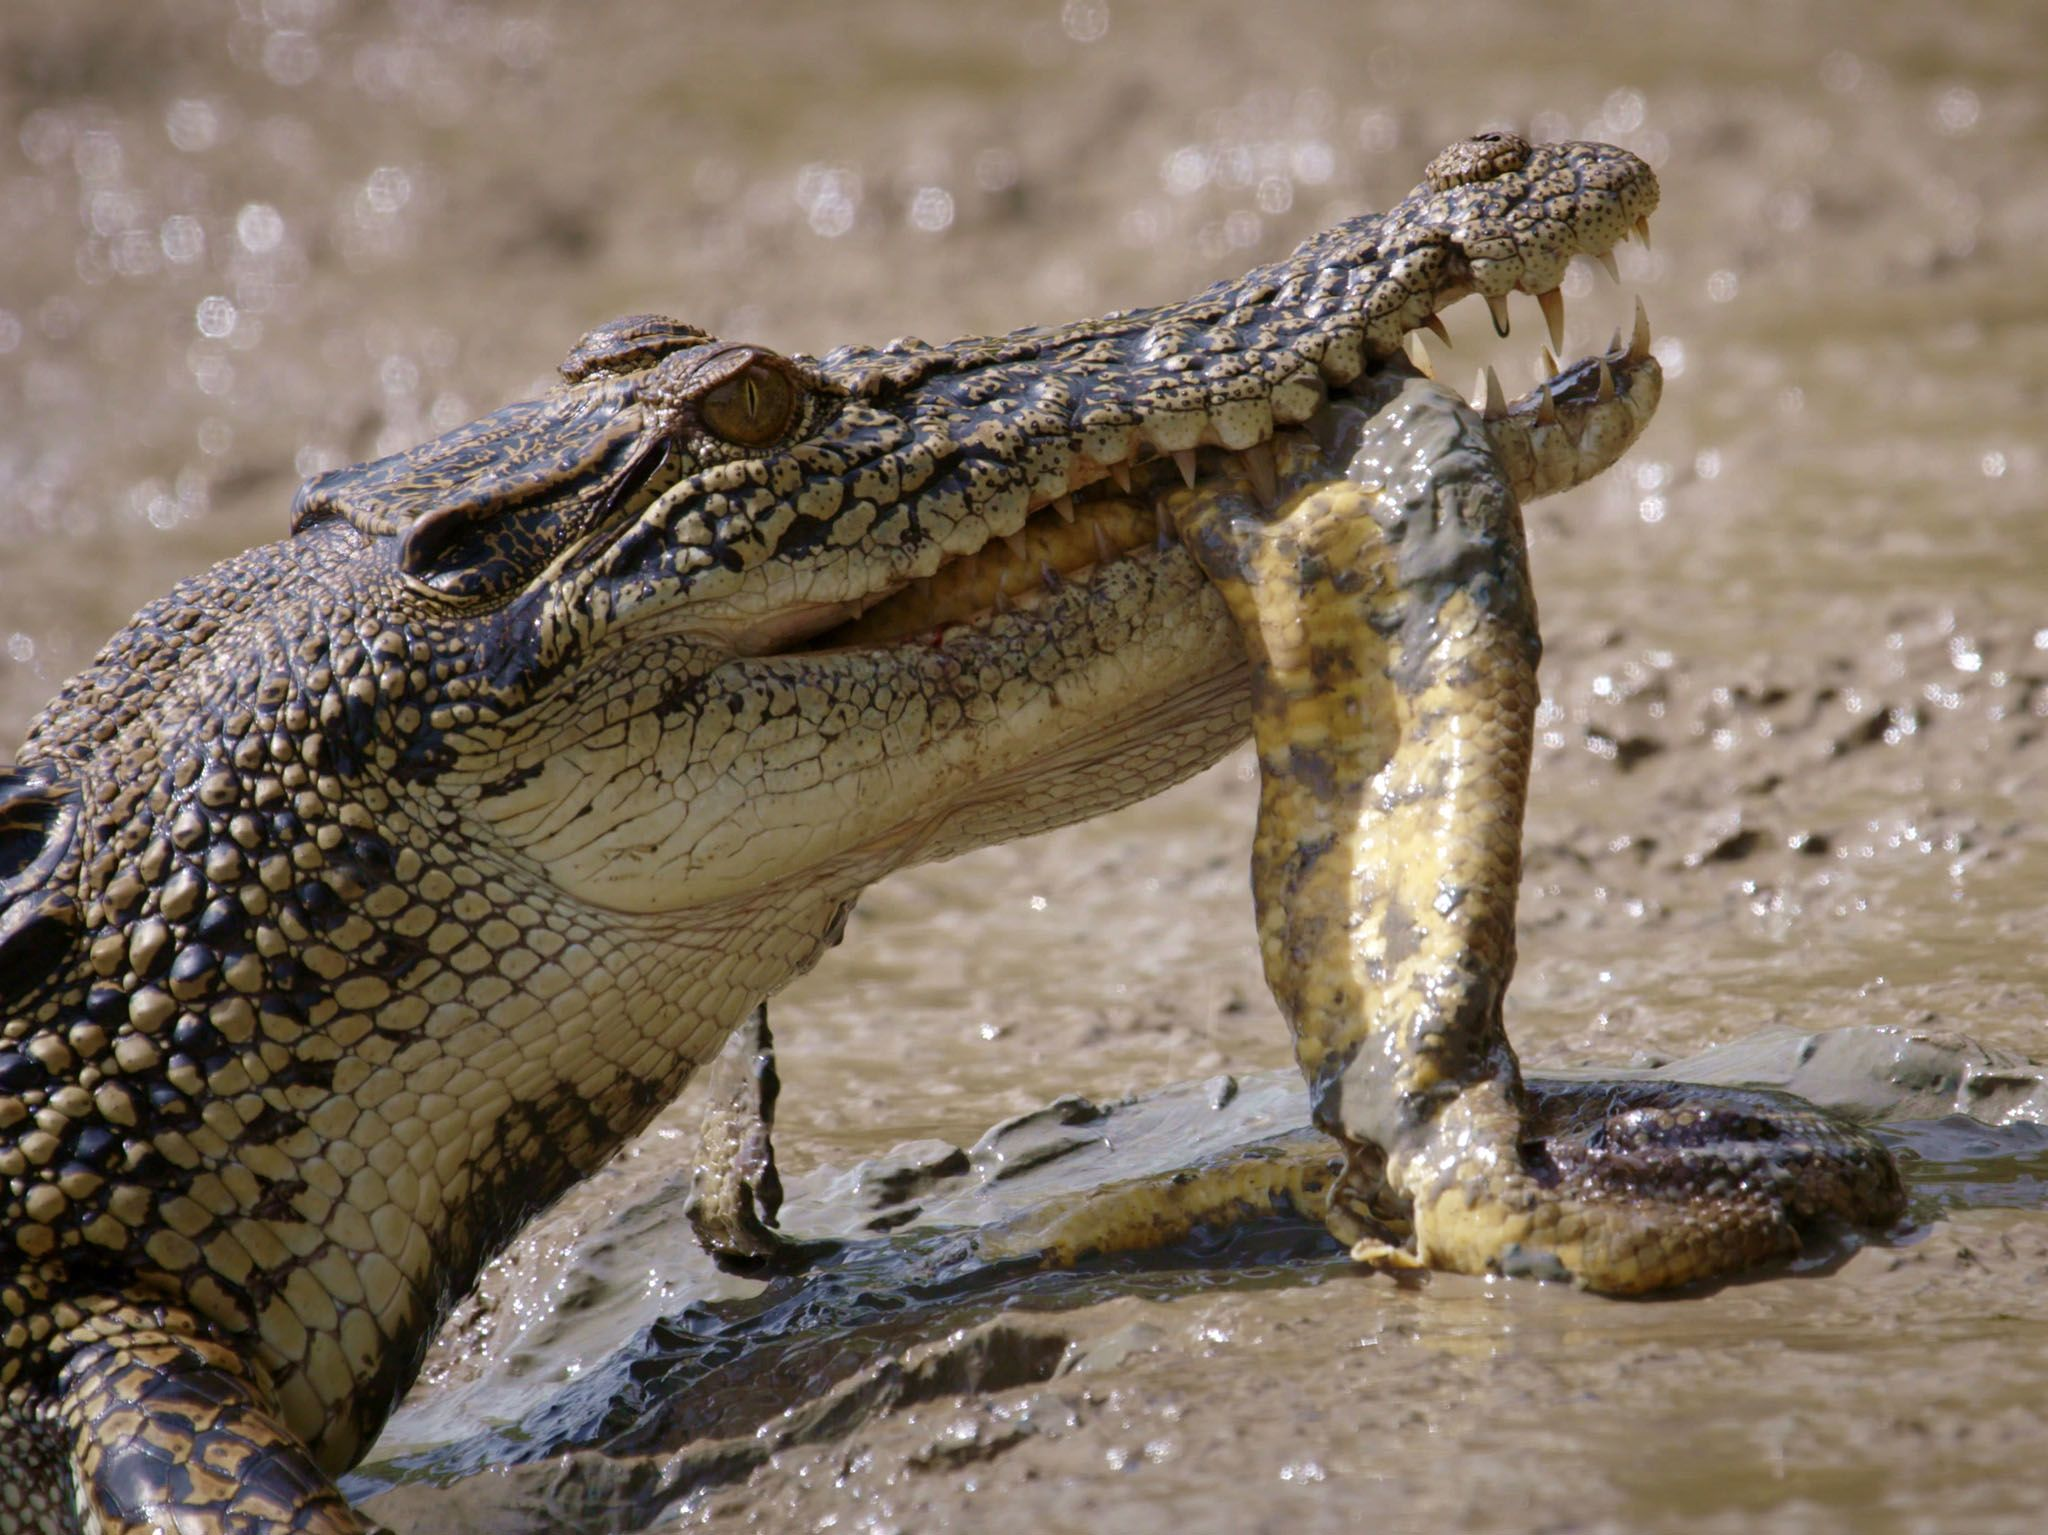 Saltwater Crocodile with dead snake in mouth. This image is from Boss Croc. [Photo of the day - June 2017]